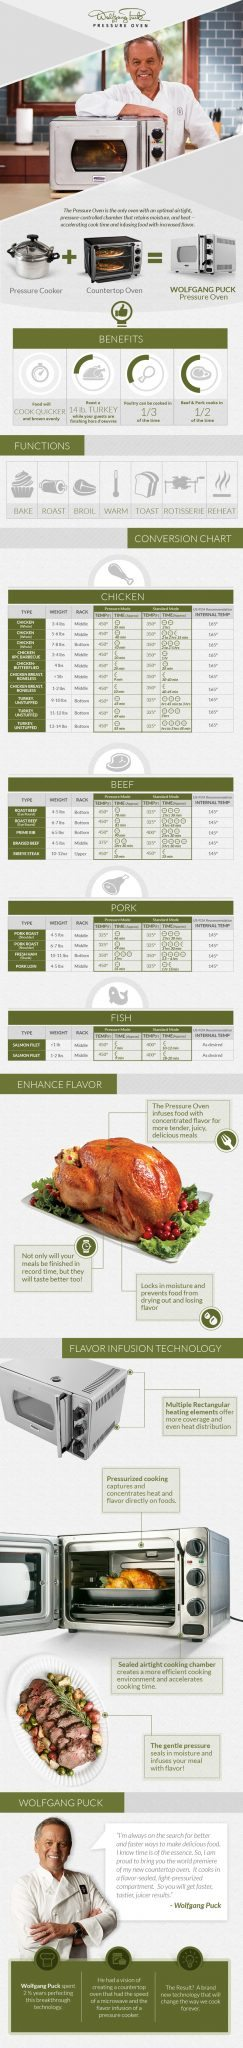 Wolfgang-Puck-Pressure-Oven-Infographic